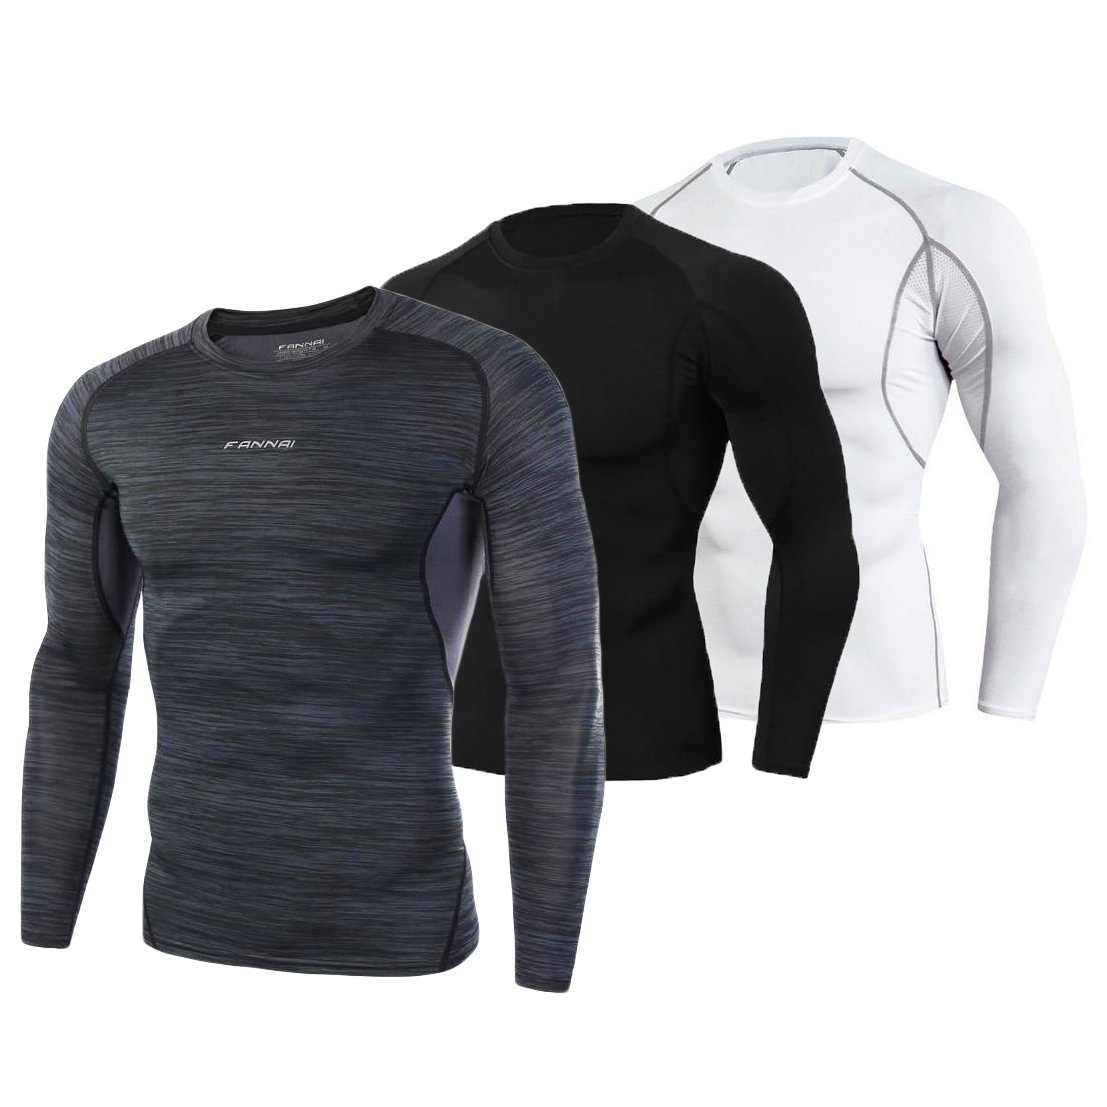 OMNIDEN Set of 3 (one of each) / S LMNT QuickDry Long Sleeve Top